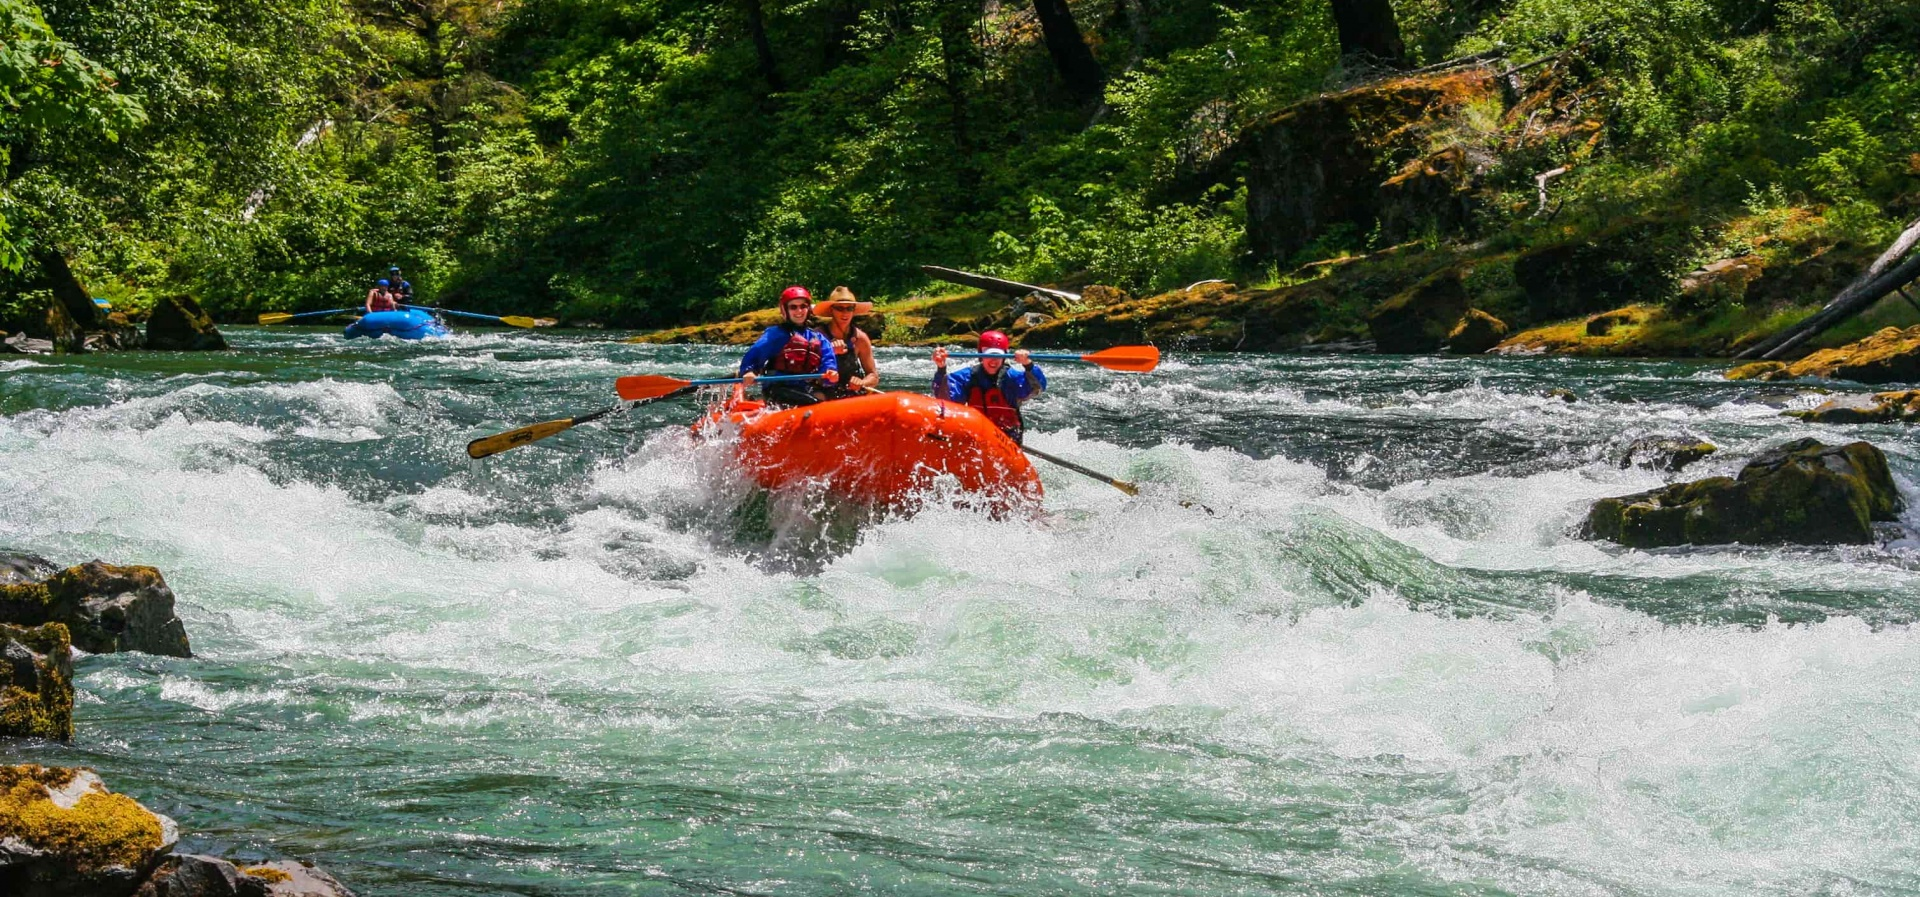 Couple whitewater rafting on the North Umpqua River